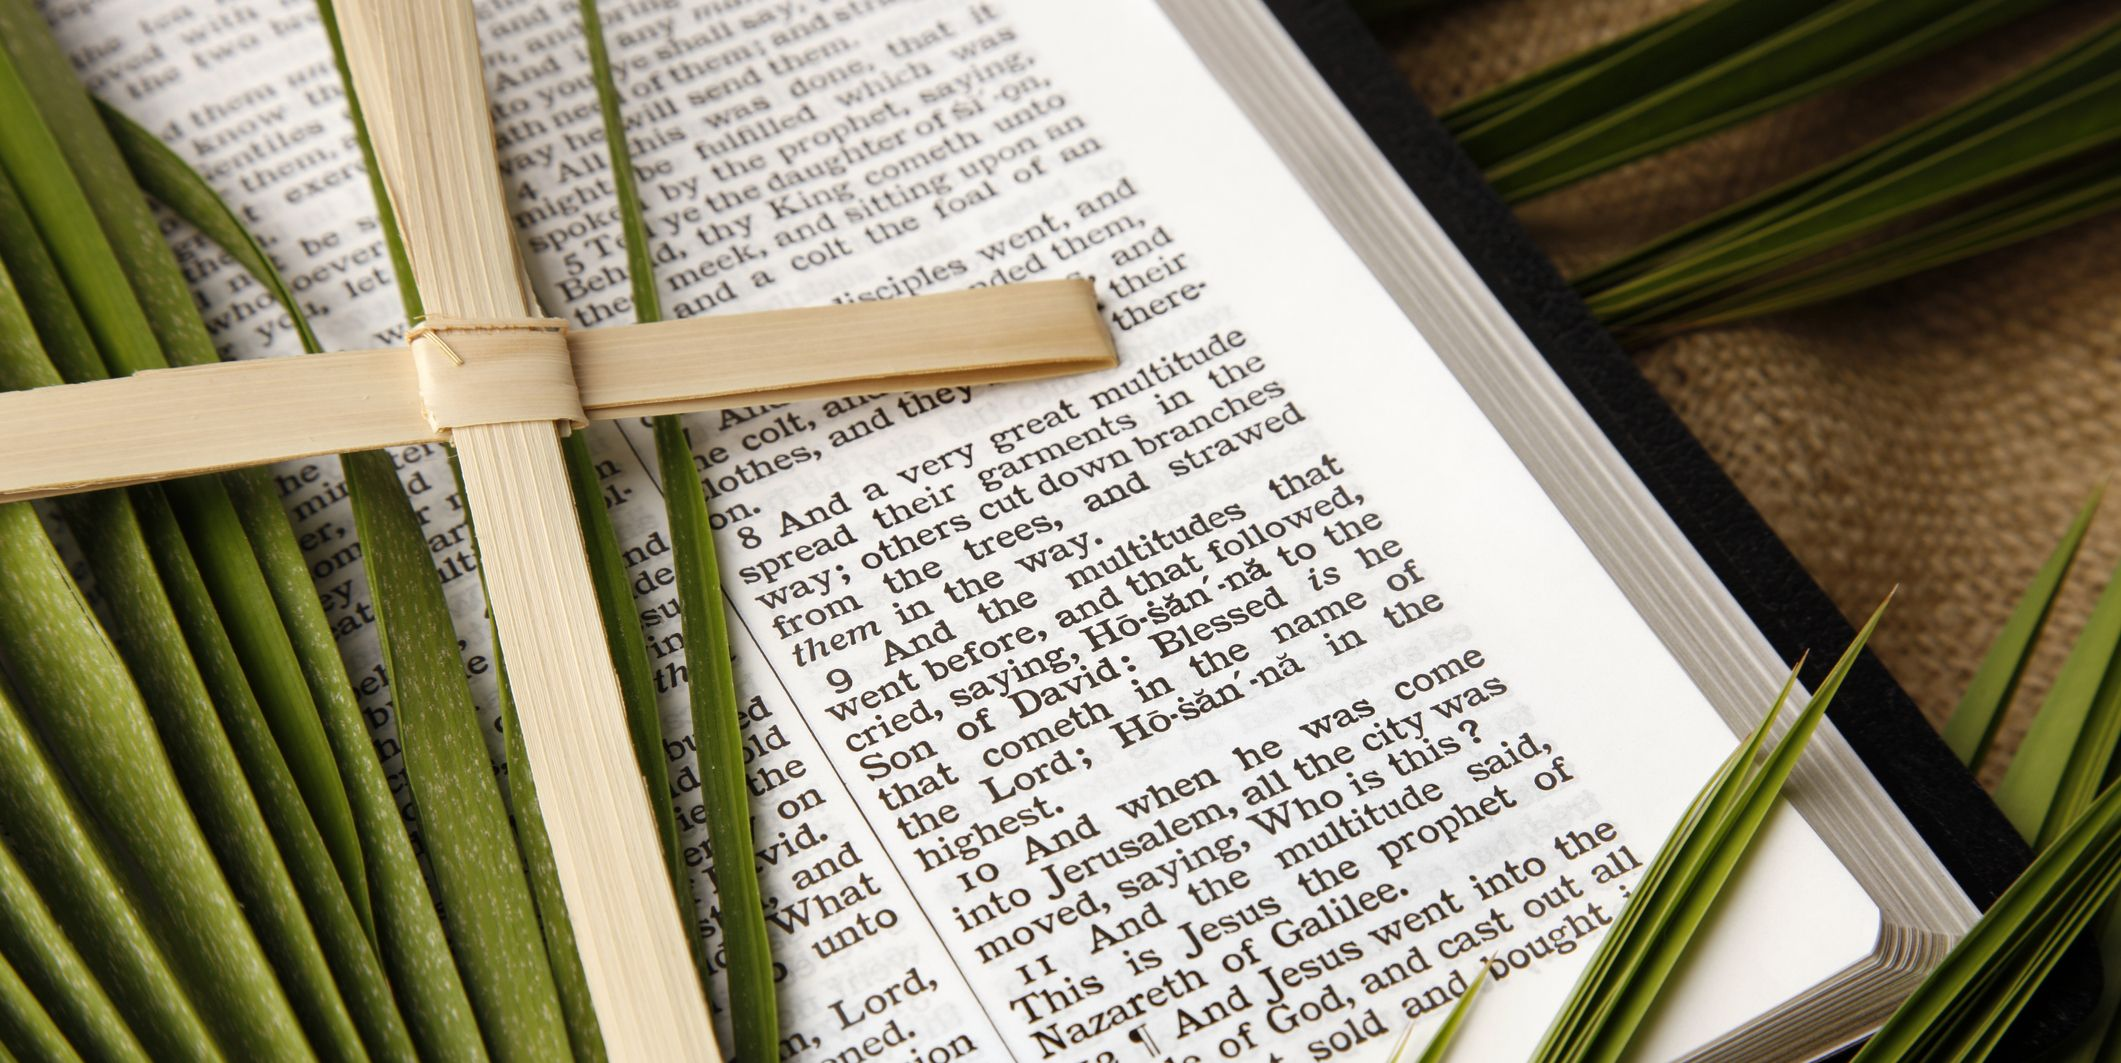 15 Palm Sunday Scriptures to Read Out Loud During Holy Week